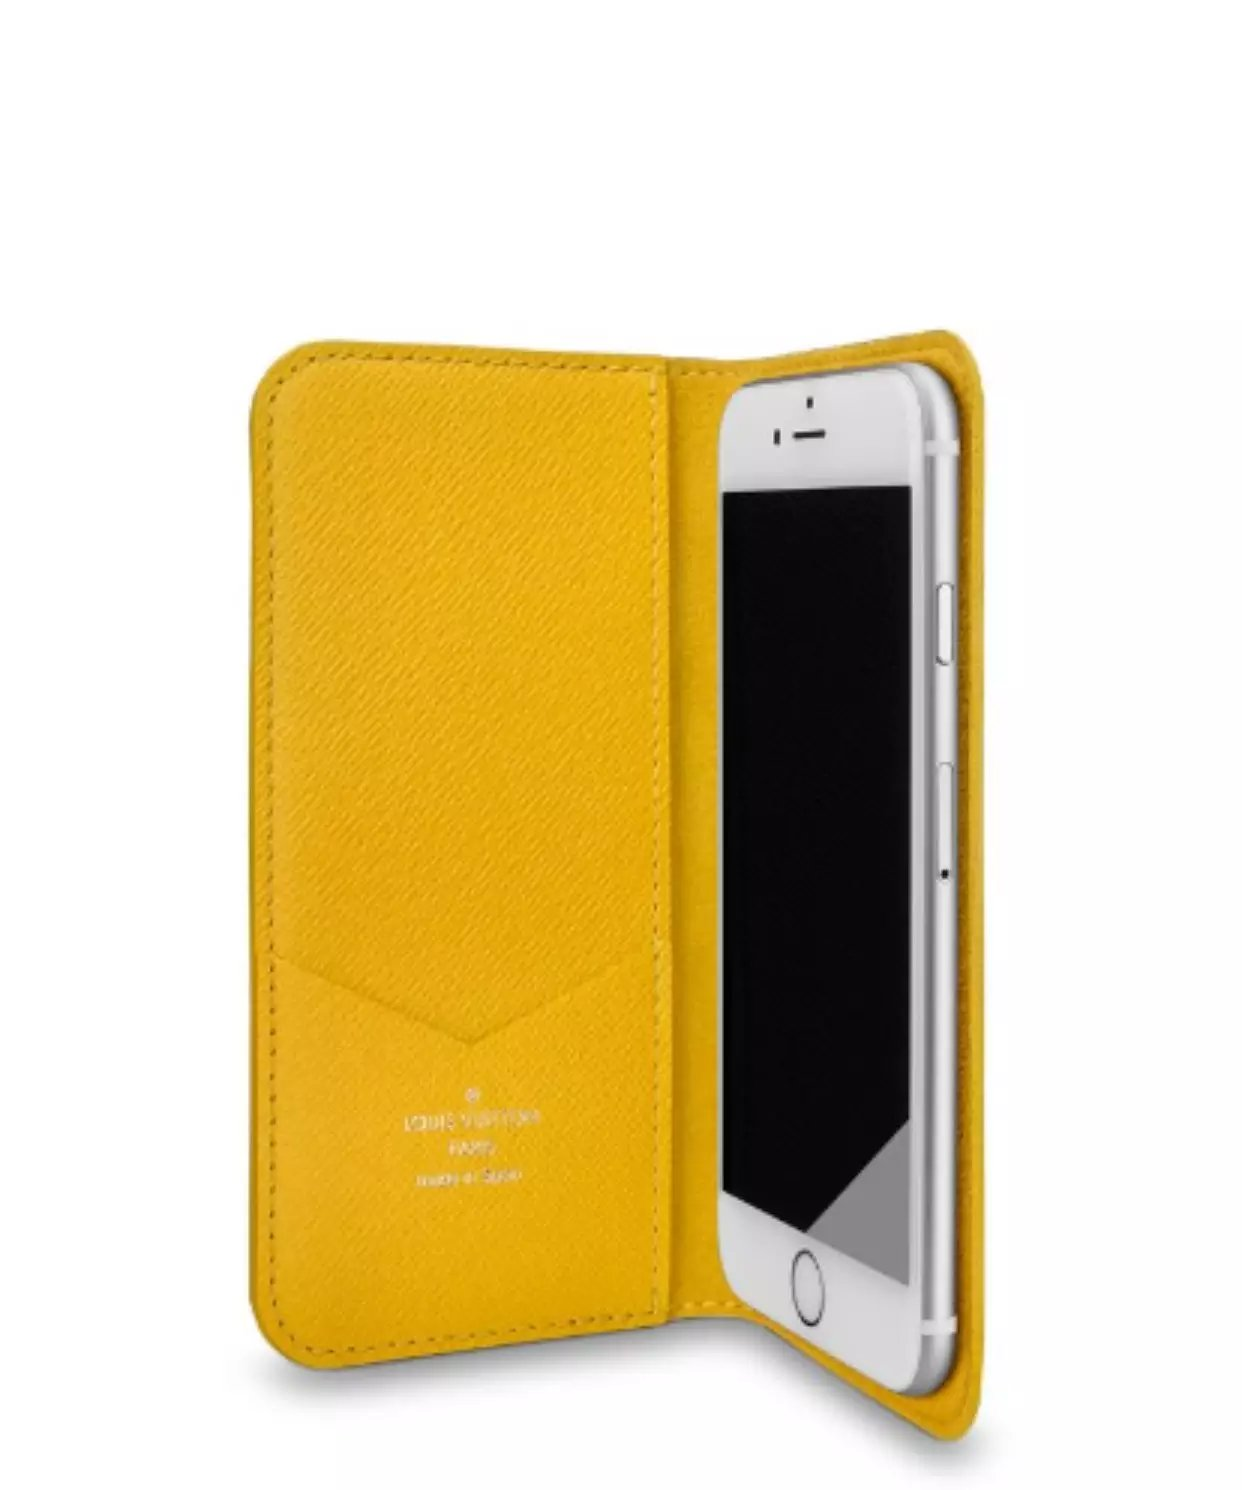 iphone hülle online shop iphone gummihülle Louis Vuitton iphone6s hülle iphone tasche leder iphone 3g hülle iphone 3s hülle iphone 6s ca6s leder iphone 6s filztasche apple iphone ca6s